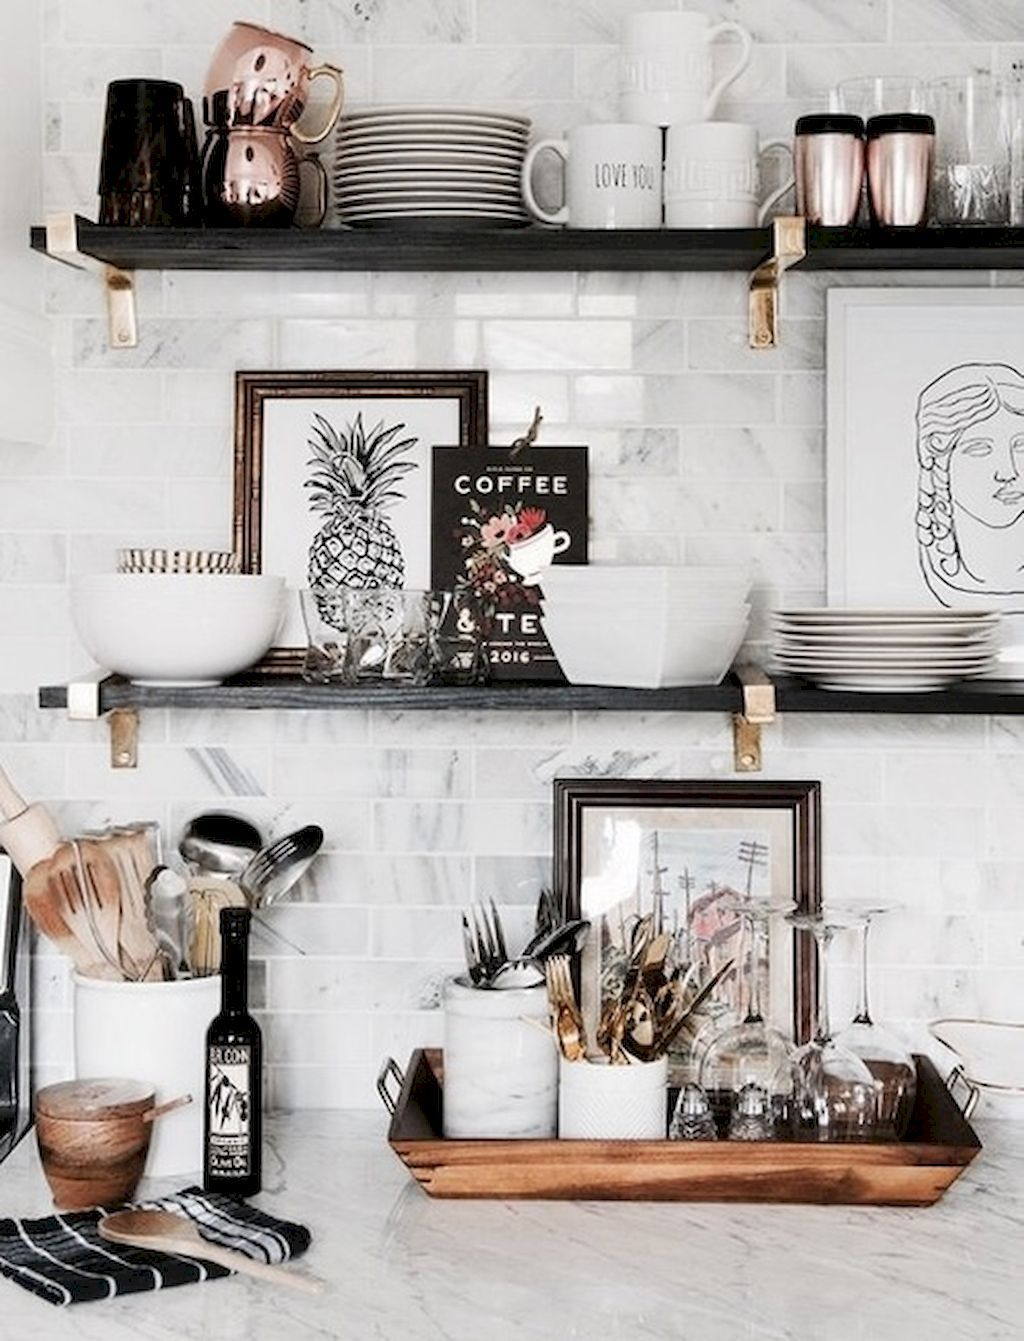 Black And White Kitchen Accessories Pottery Canisters Pin By Stachia Stoker On Home Sweet Pinterest Adorable 55 Clean Rustic Decor Ideas Https Homeastern Com 2017